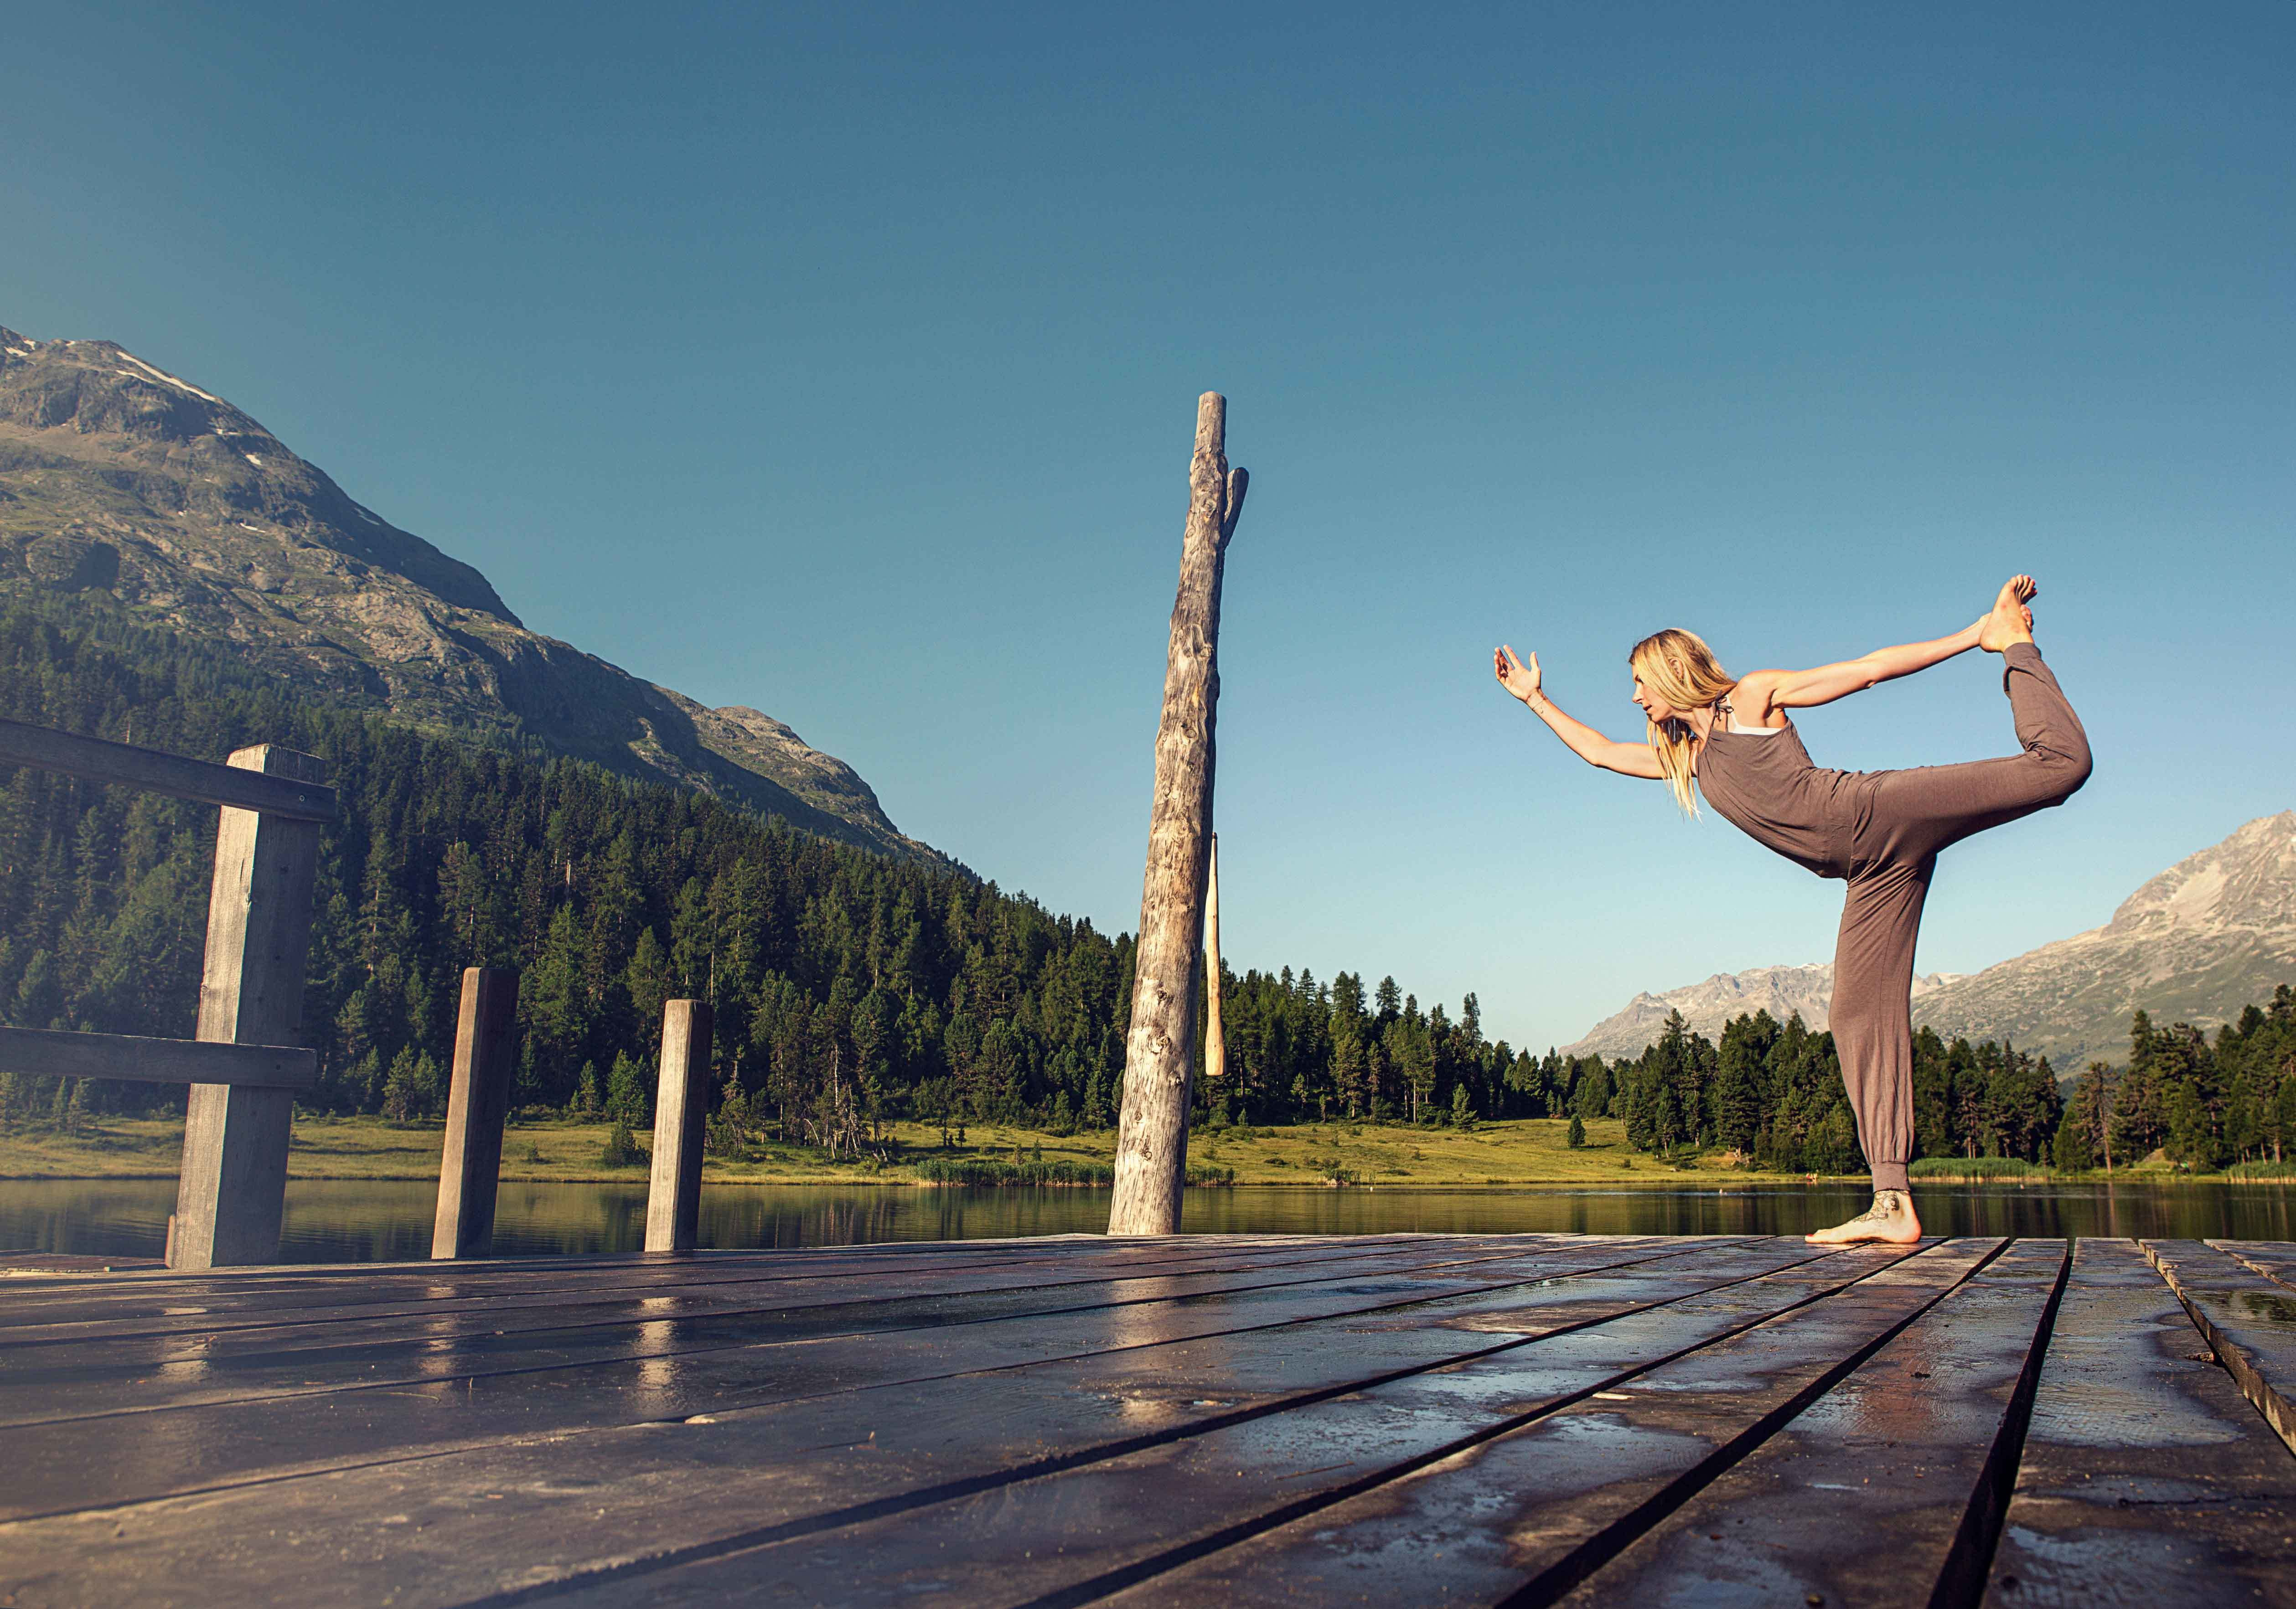 The perfect start to the day. Yoga in the early morning on Lej da Staz